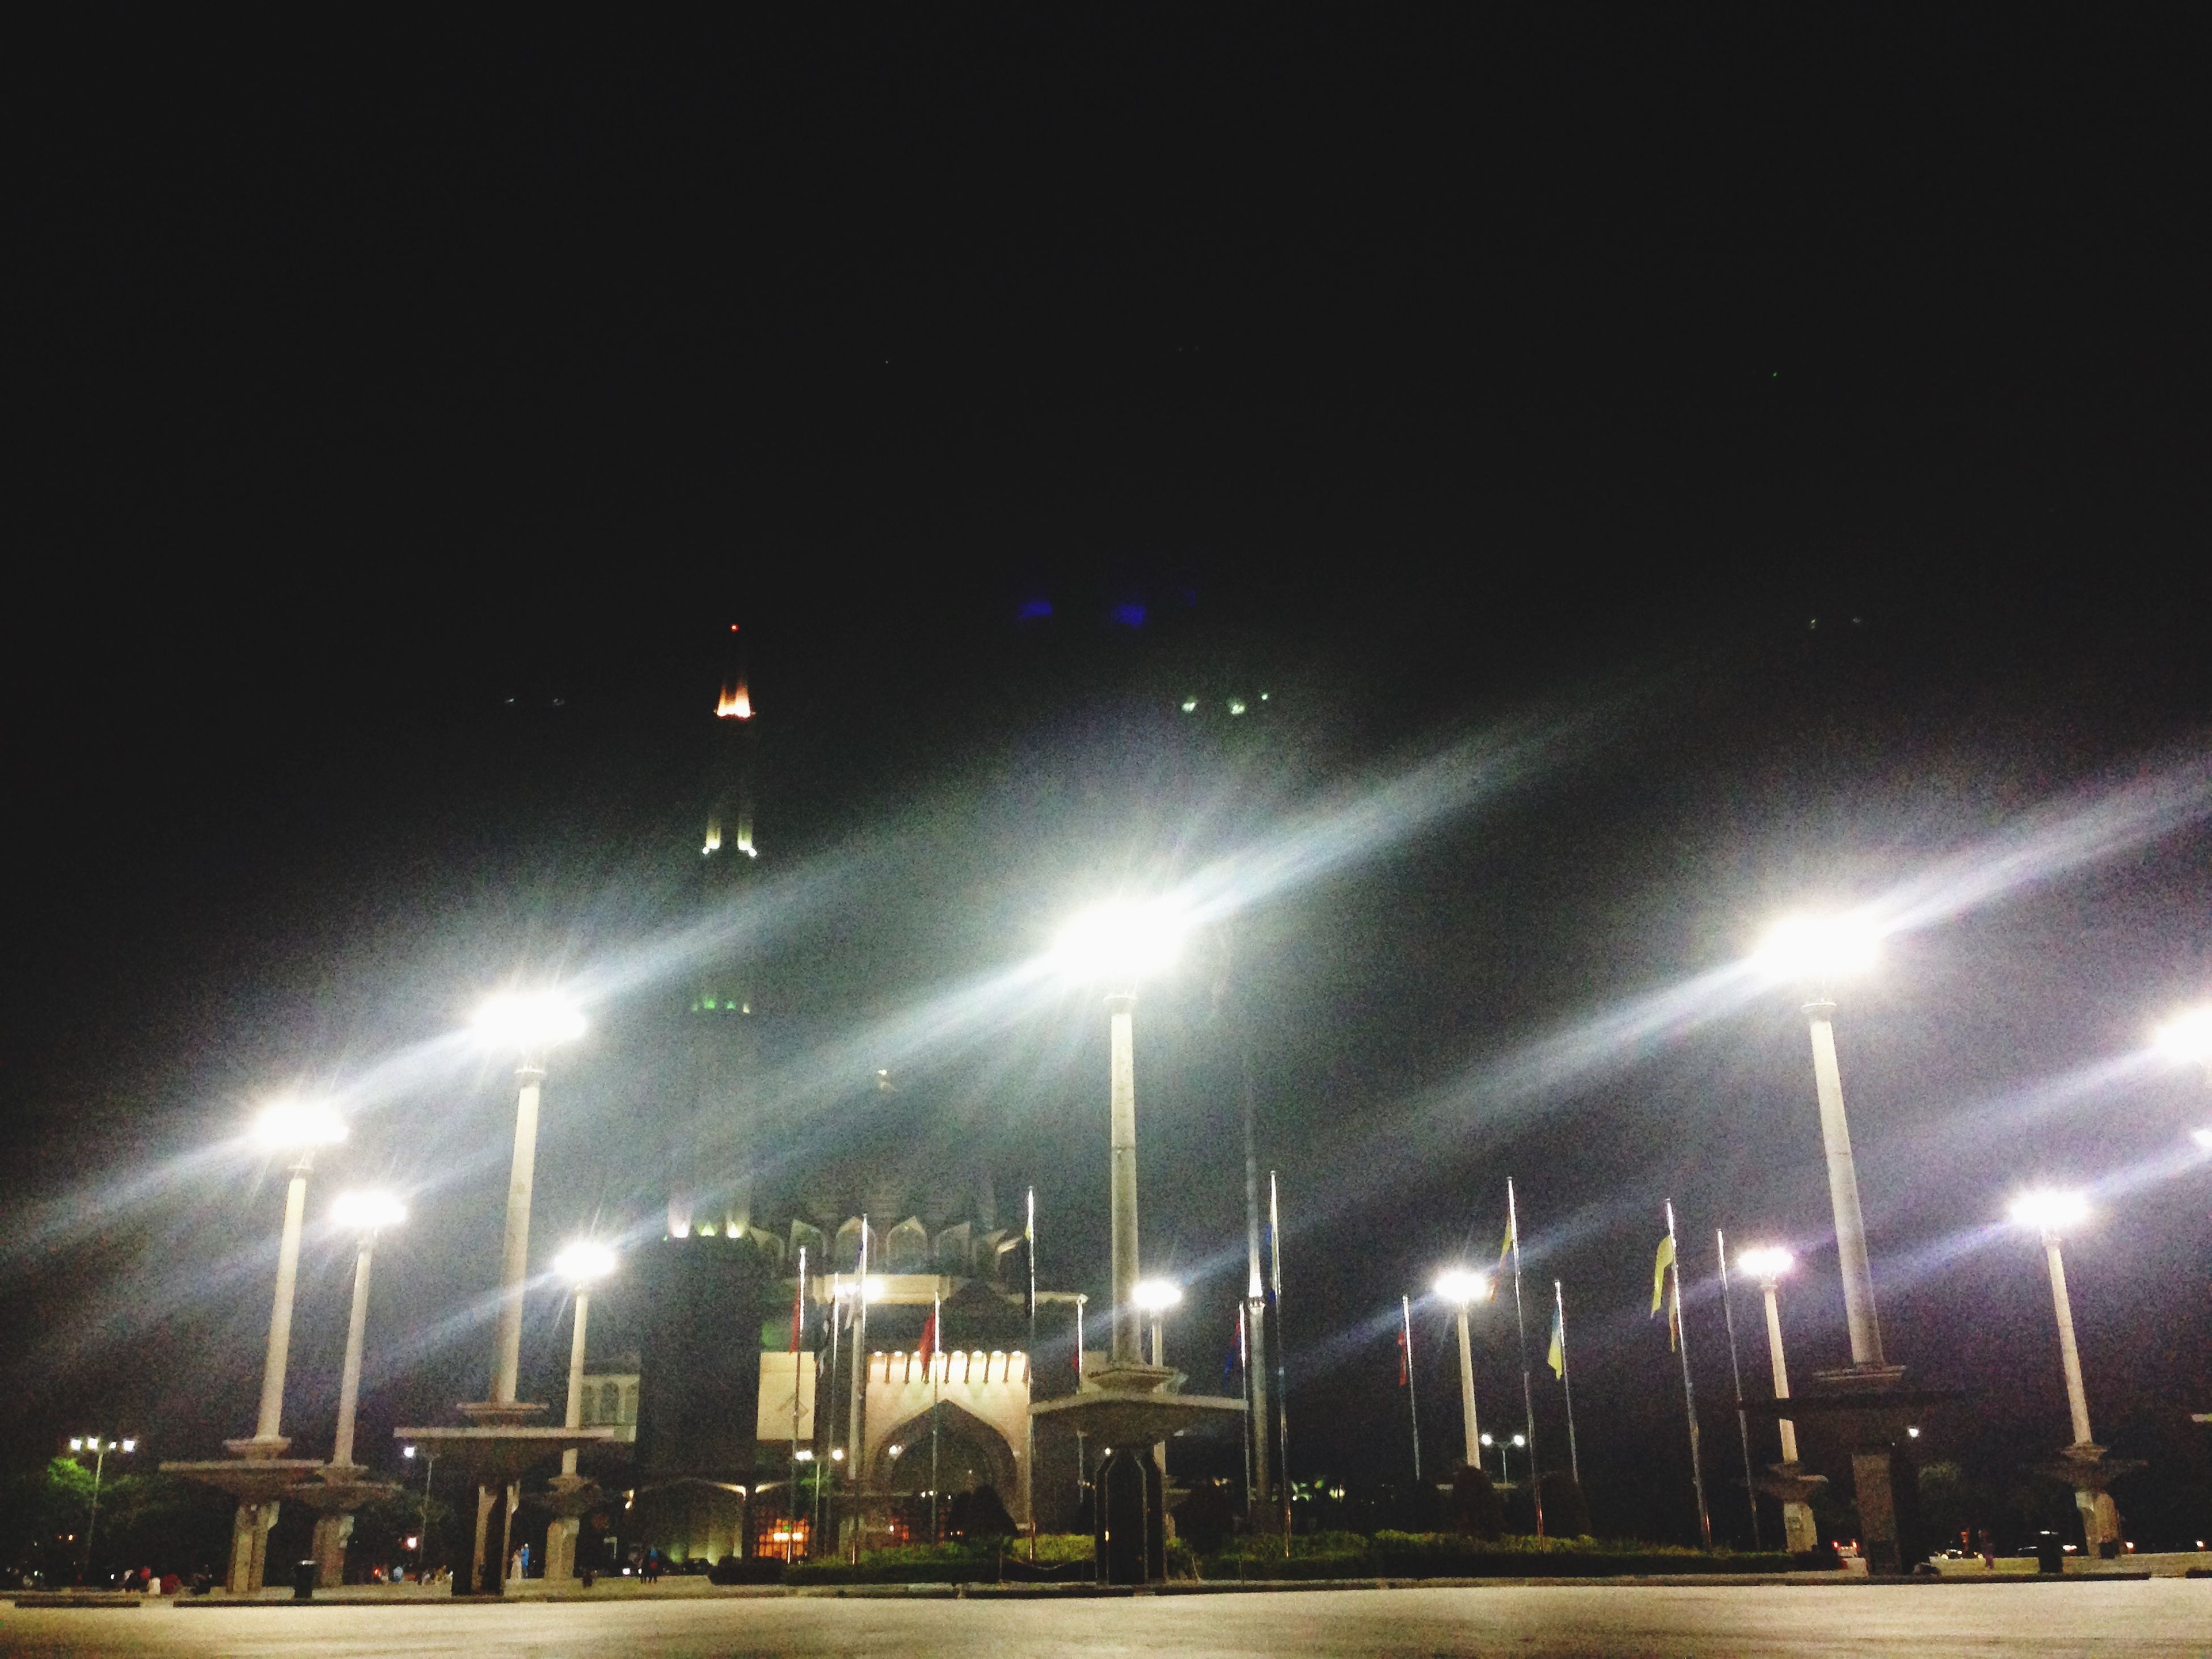 illuminated, night, street light, lighting equipment, built structure, building exterior, architecture, city, transportation, sky, light - natural phenomenon, clear sky, mode of transport, outdoors, street, low angle view, electric light, no people, in a row, copy space